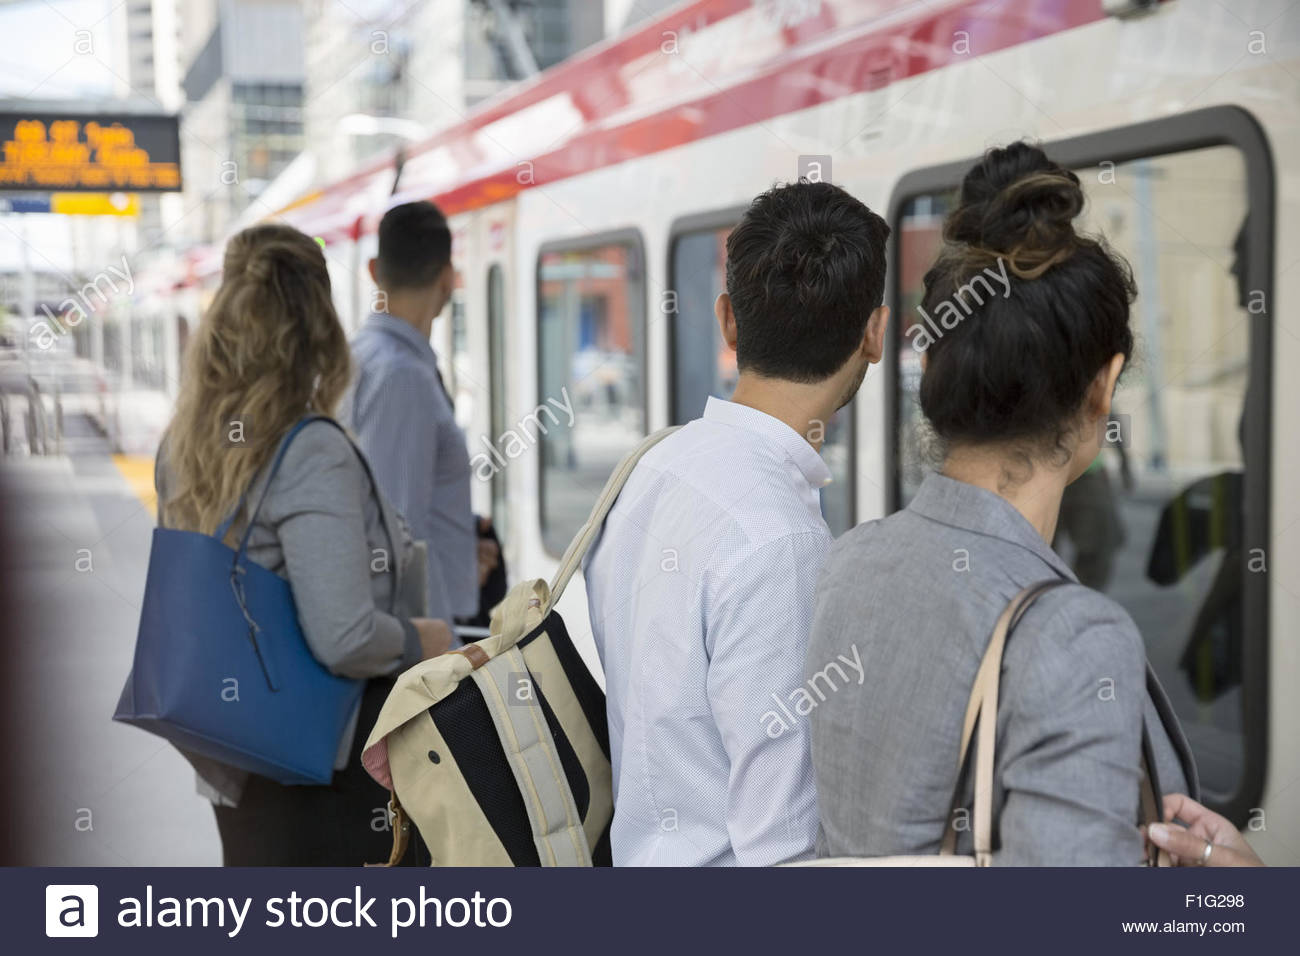 Business people waiting to board train on platform - Stock Image